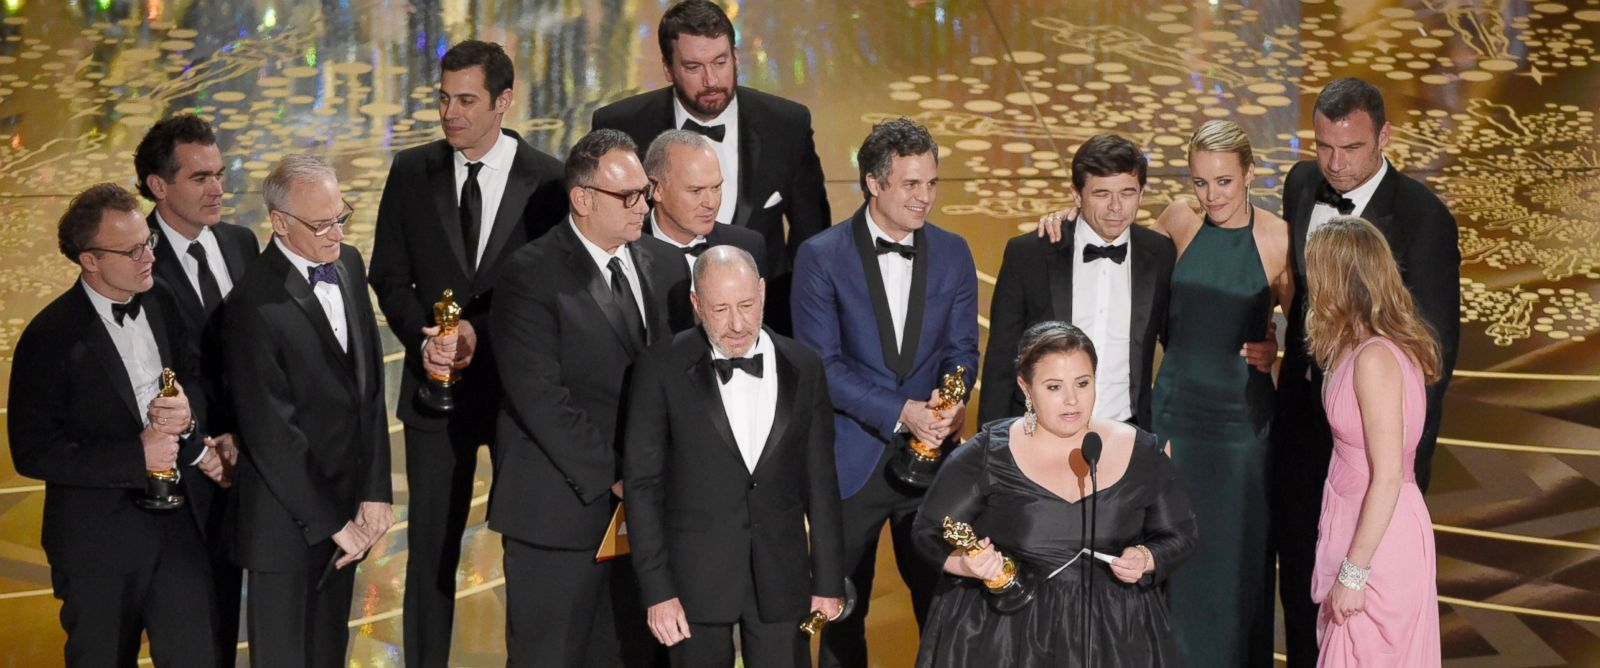 "PHOTO: Nicole Rocklin, foreground at podium, and the cast and crew of ""Spotlight,"" accept the award for best picture at the Oscars, Feb. 28, 2016, in Los Angeles."